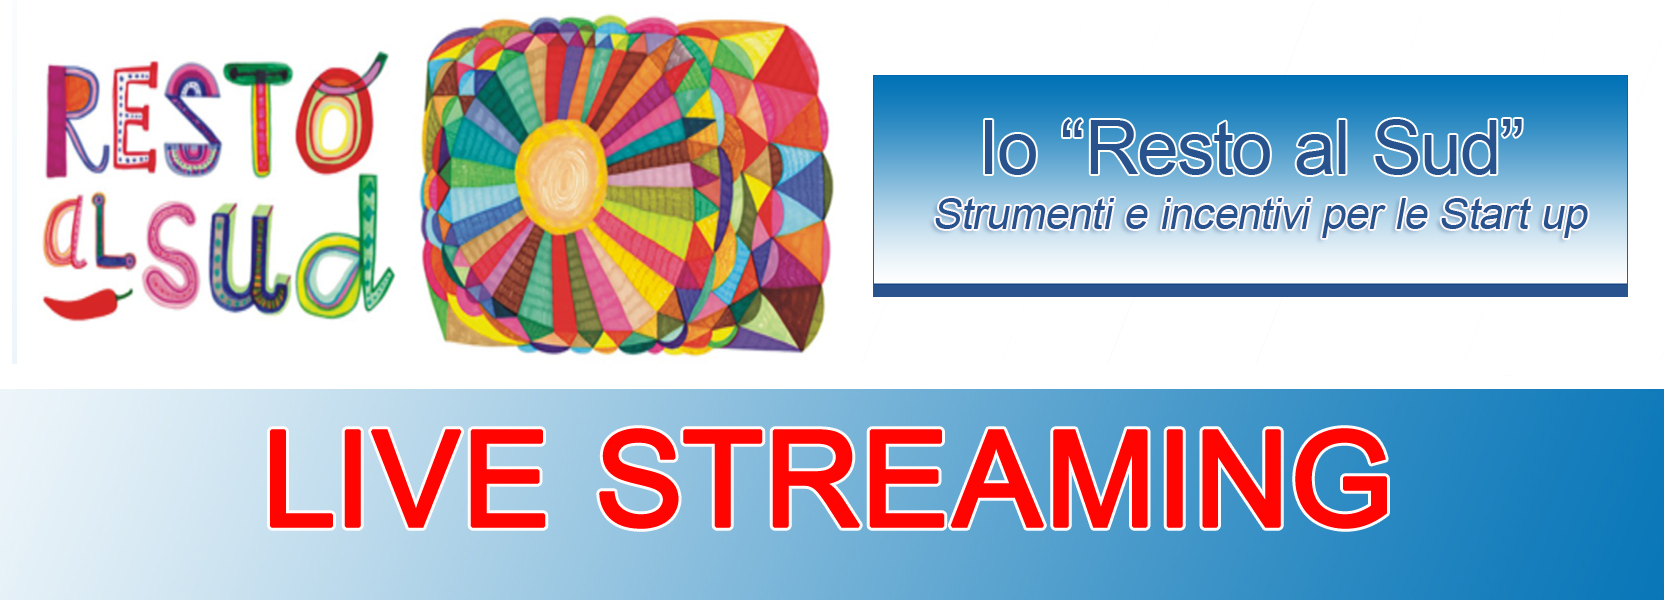 Streaming io Resto al Sud